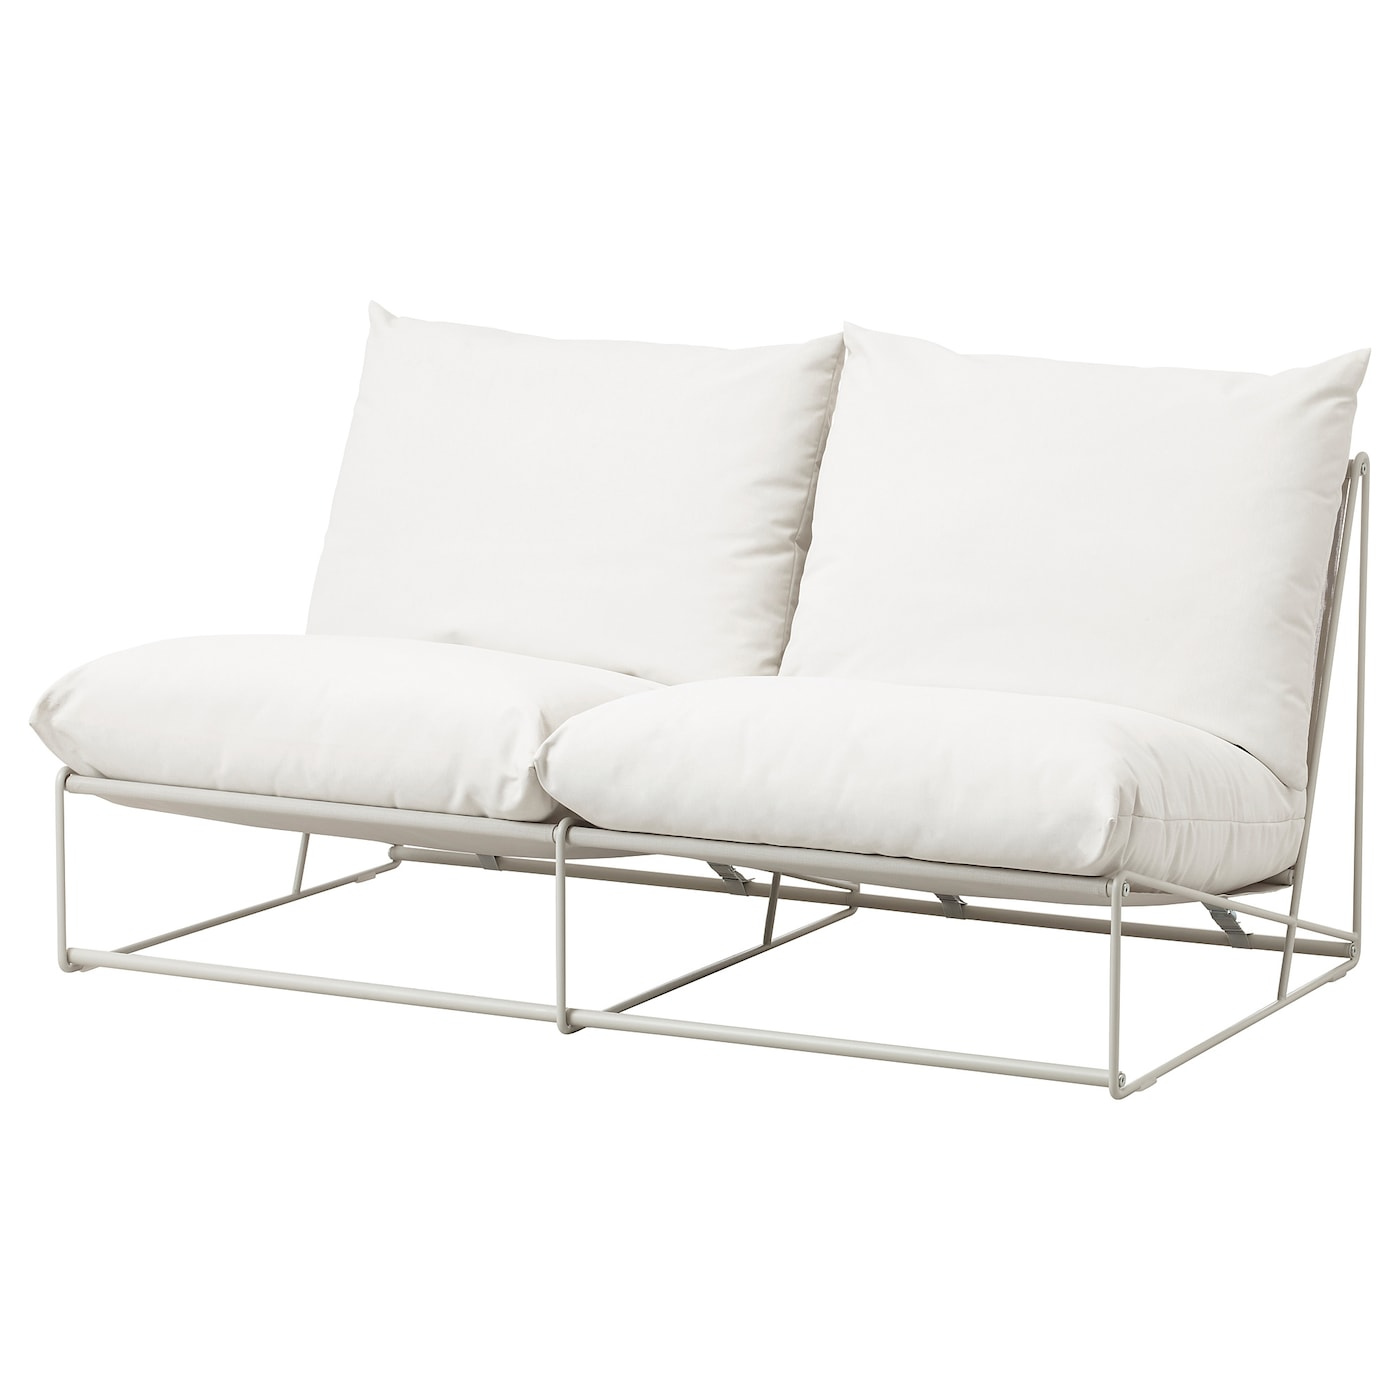 IKEA HAVSTEN canapé 2 places, int/ext